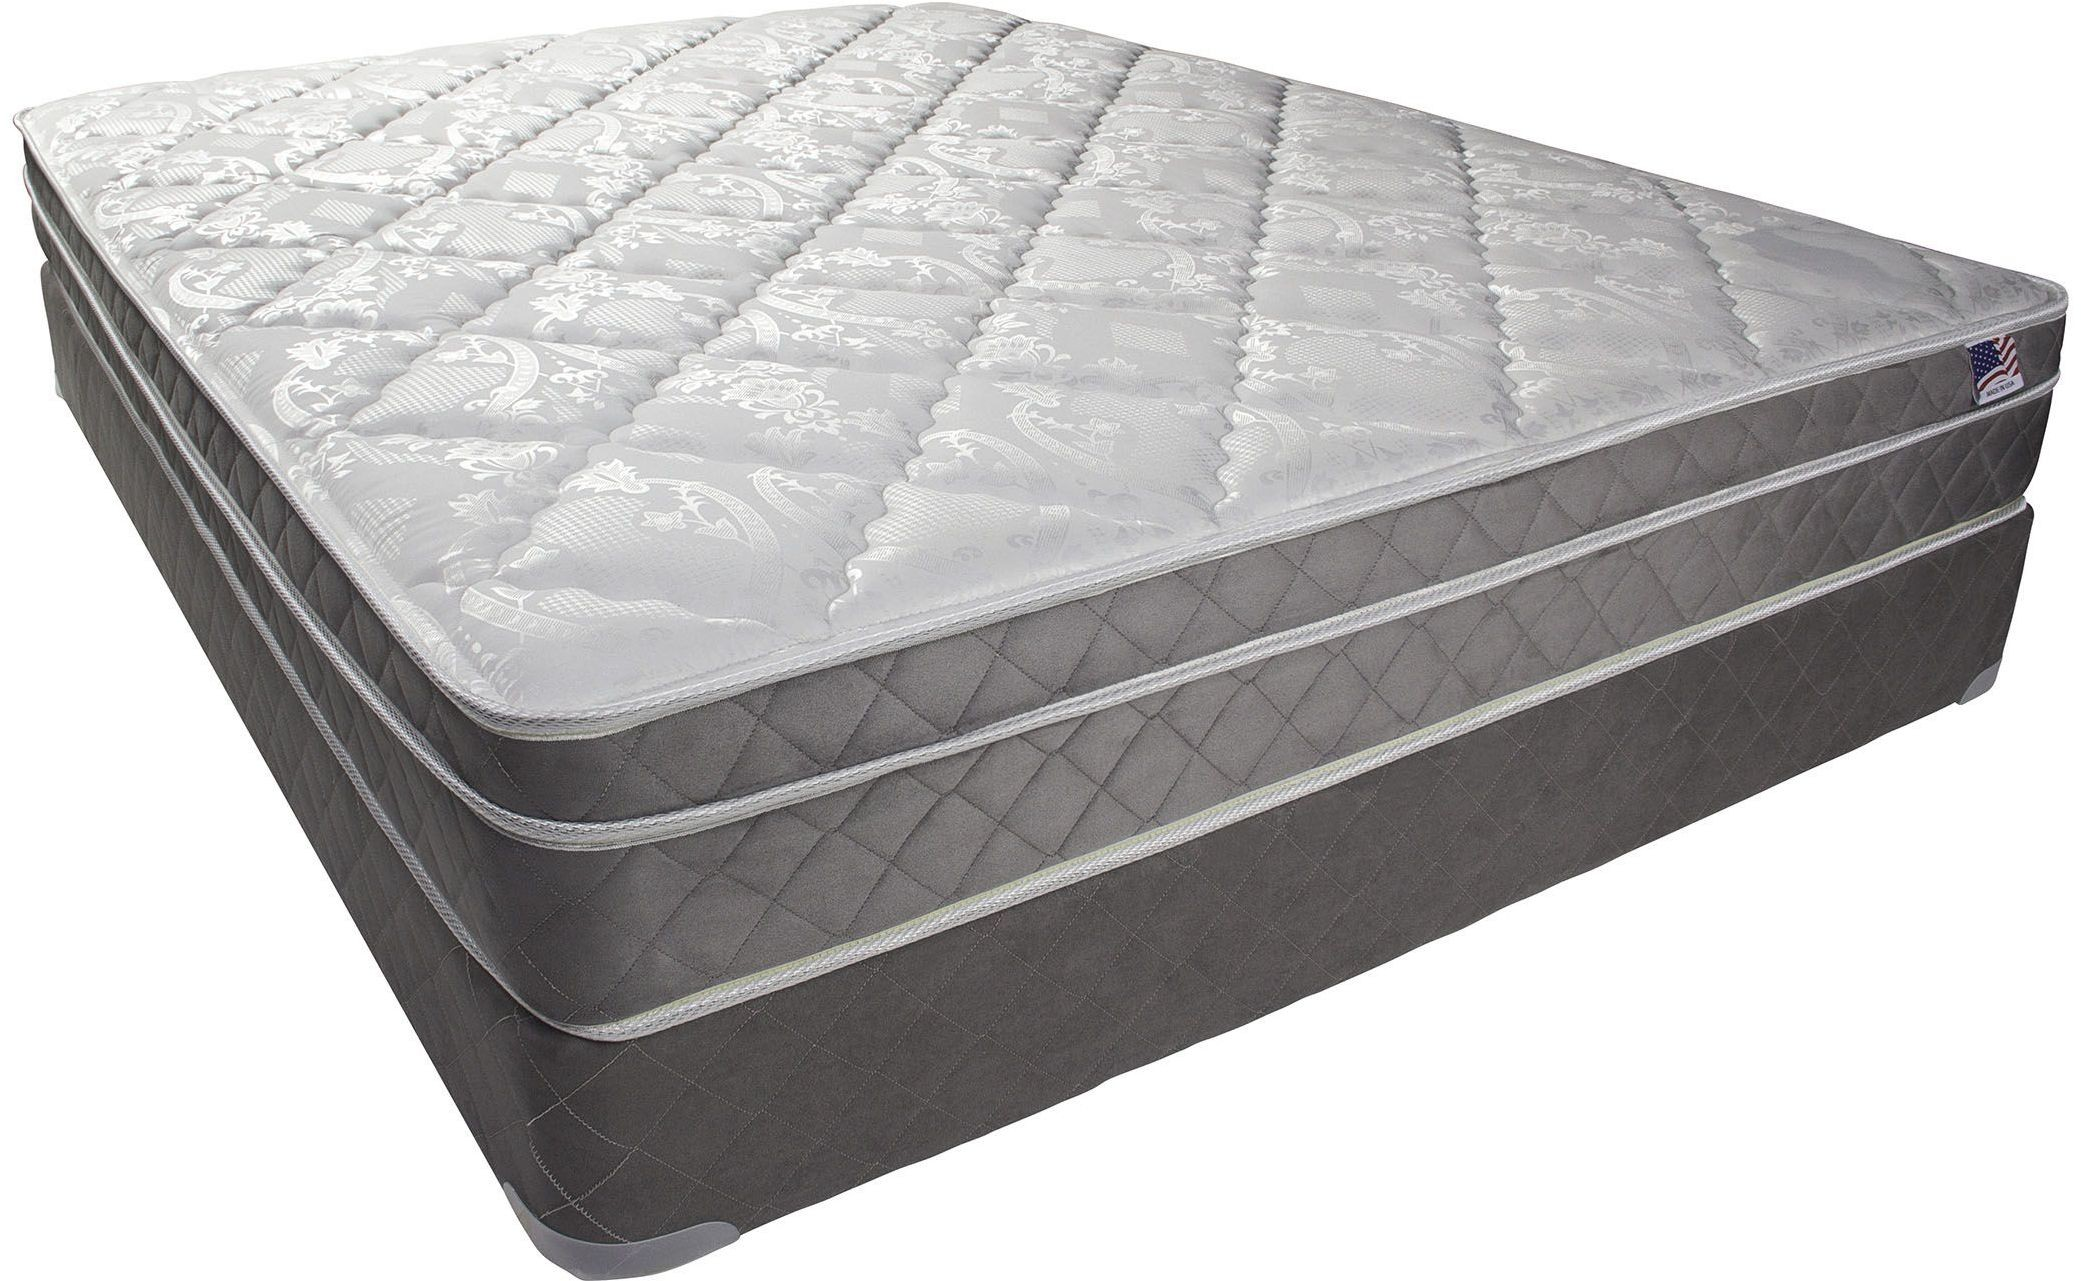 Kalina 9 Quot Euro Pillow Top Queen Mattress Dm121q M